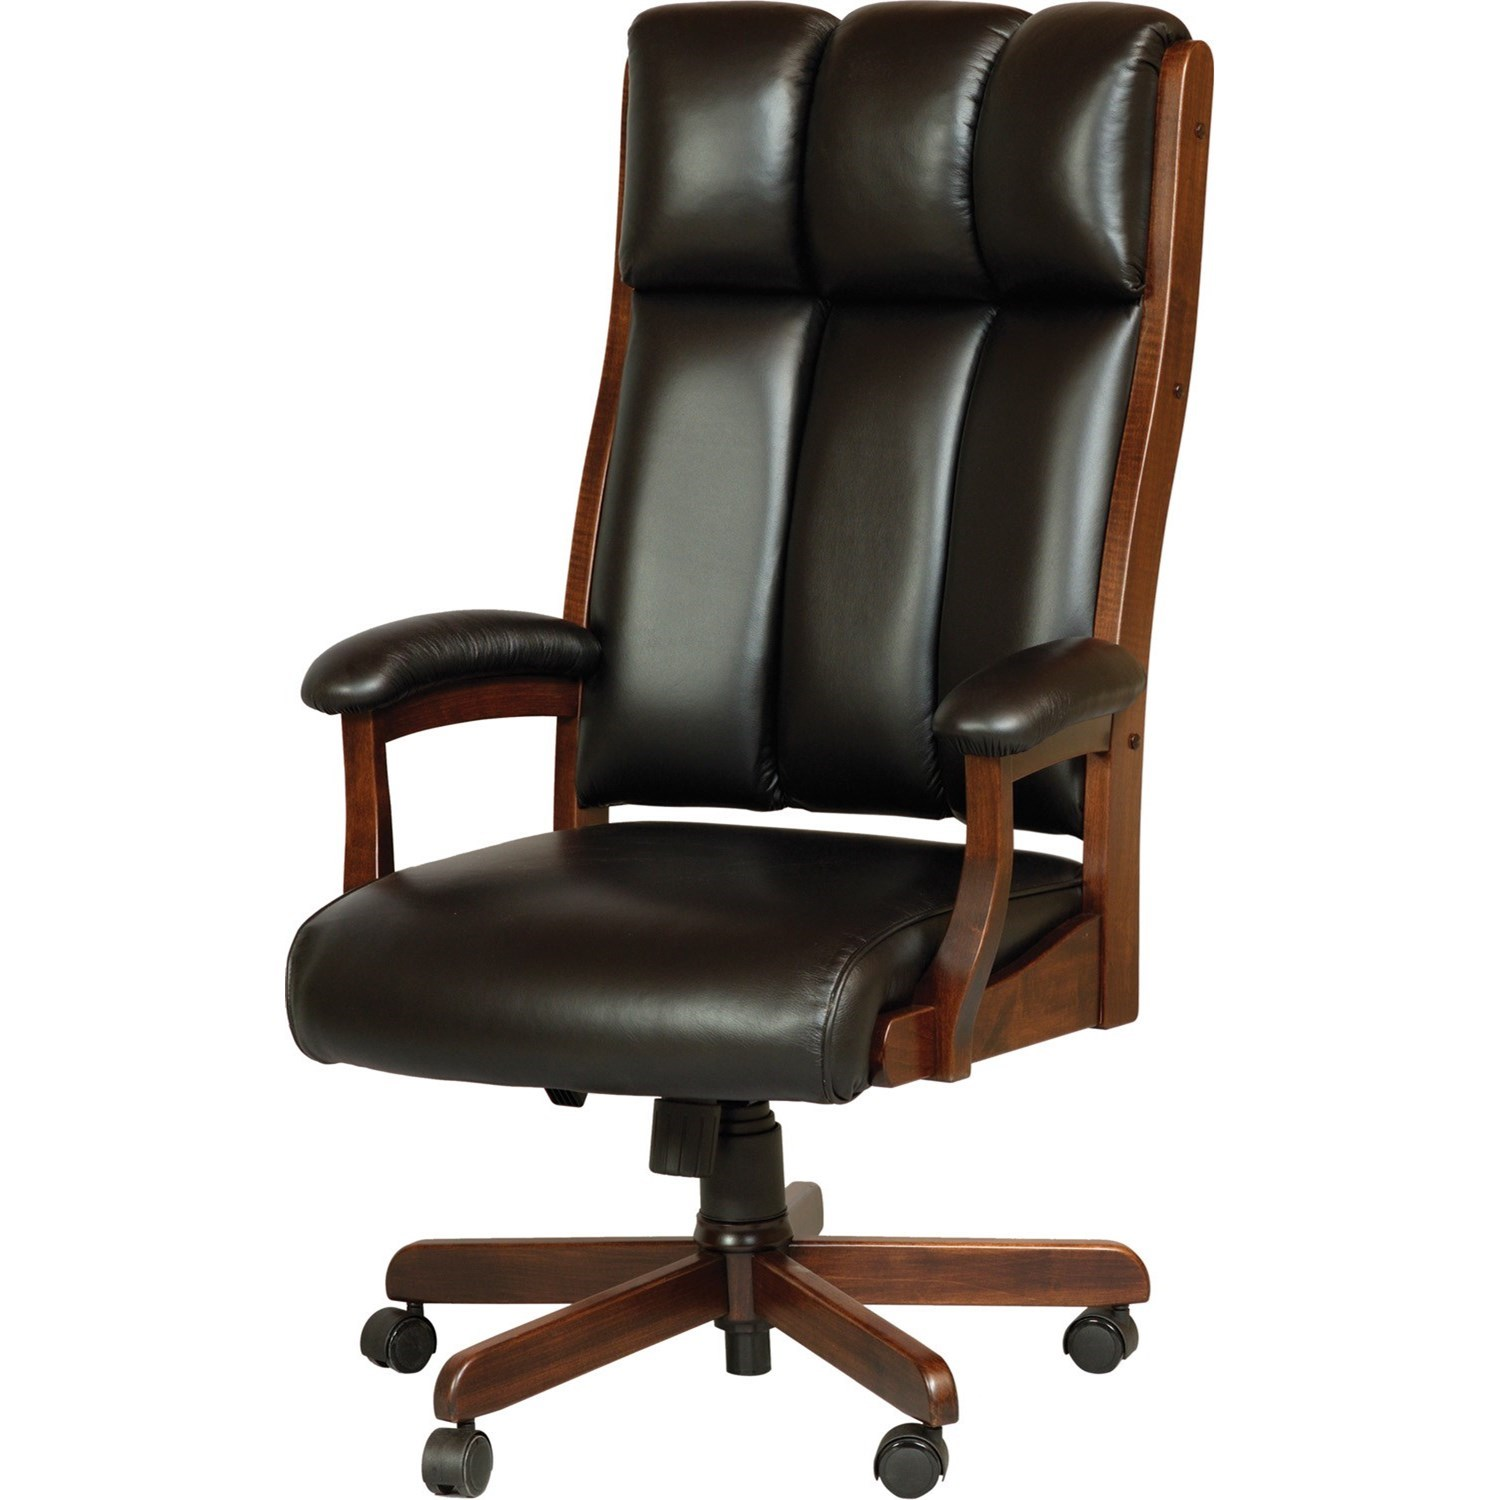 Deck Chairs Clark Executive Chair by Buckeye Rockers at Saugerties Furniture Mart